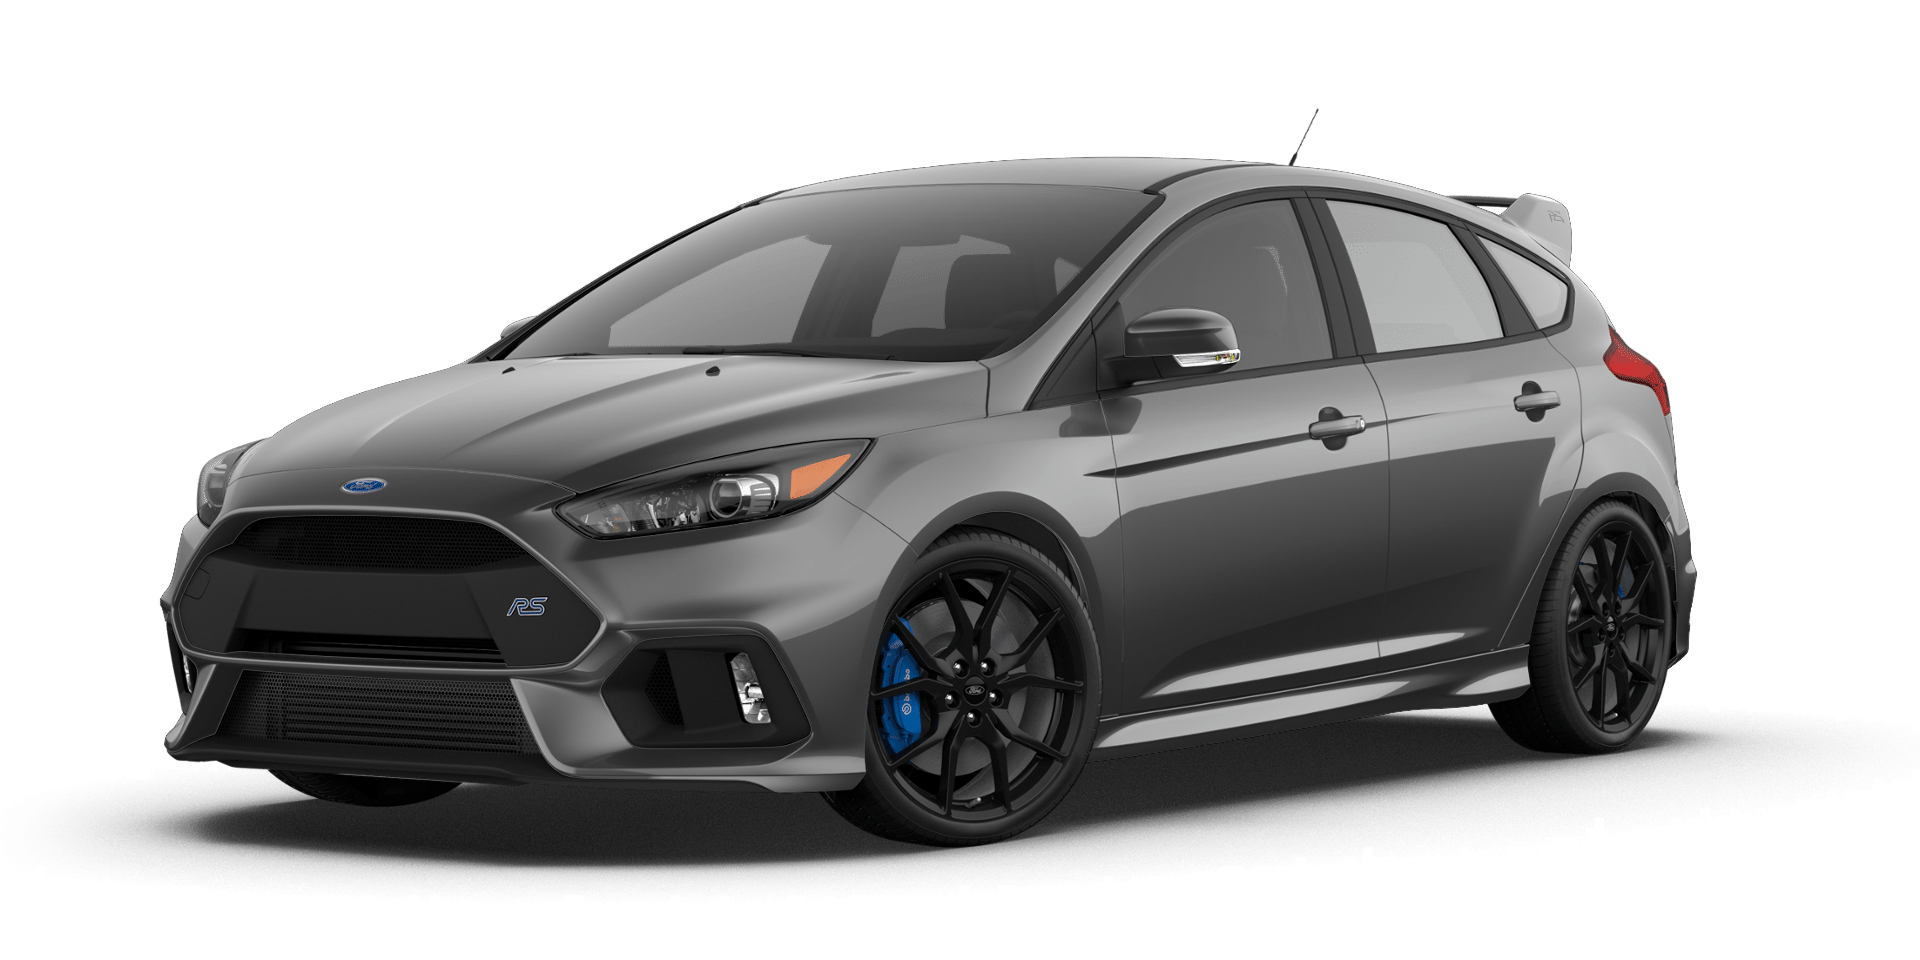 What color is your Focus RS going to be?